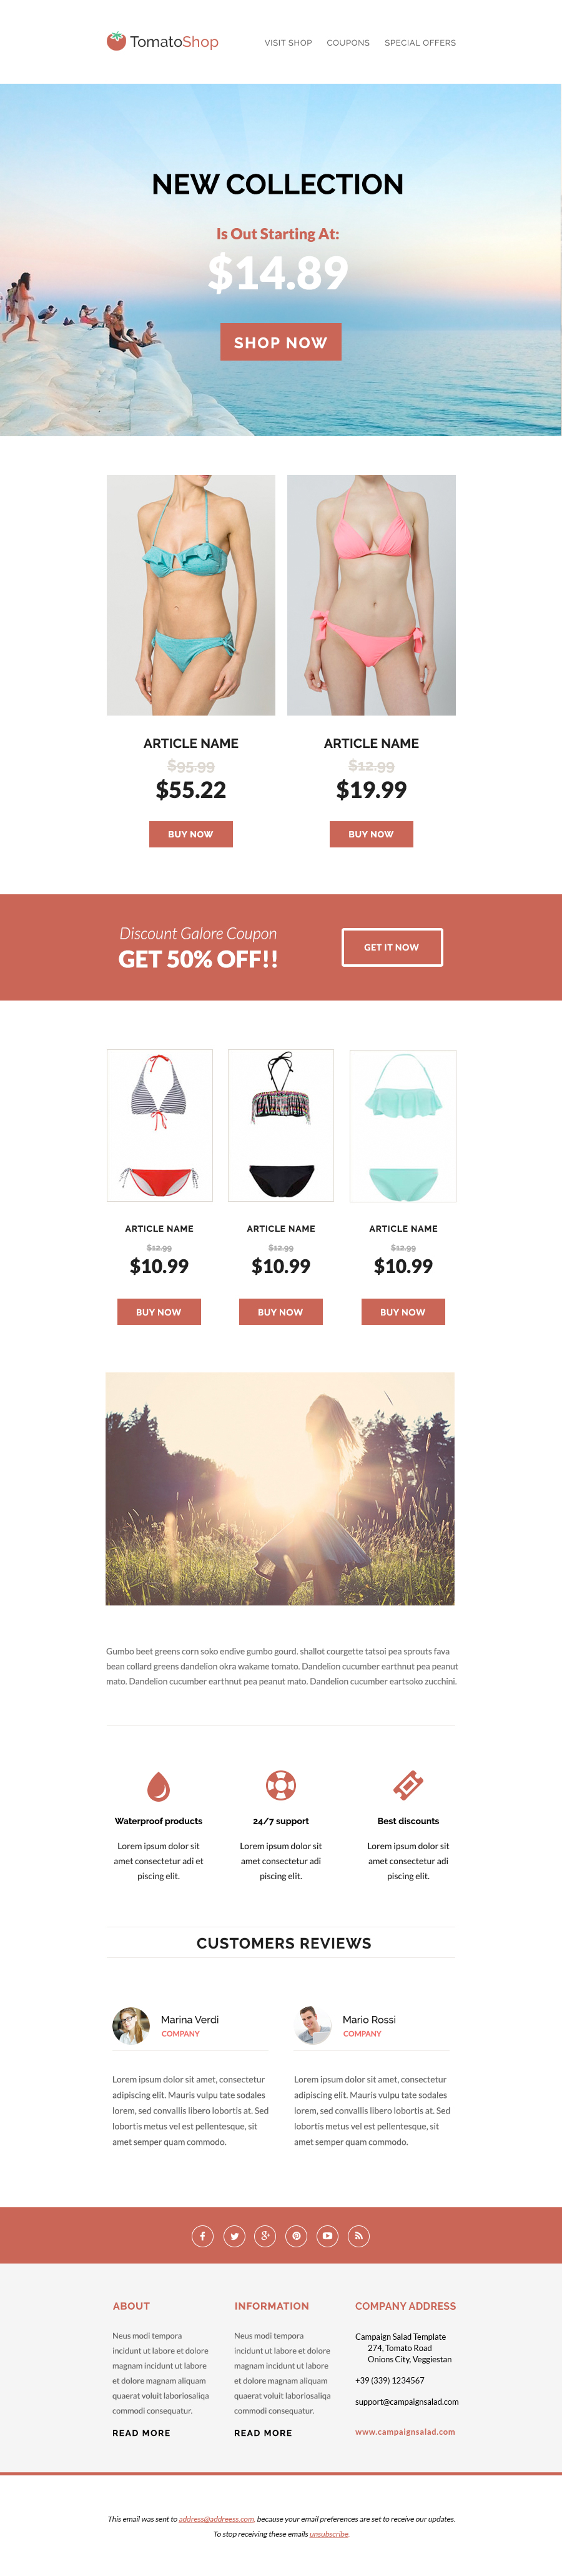 Pin by Bashooka Web & Graphic Design on Best HTML Email Templates